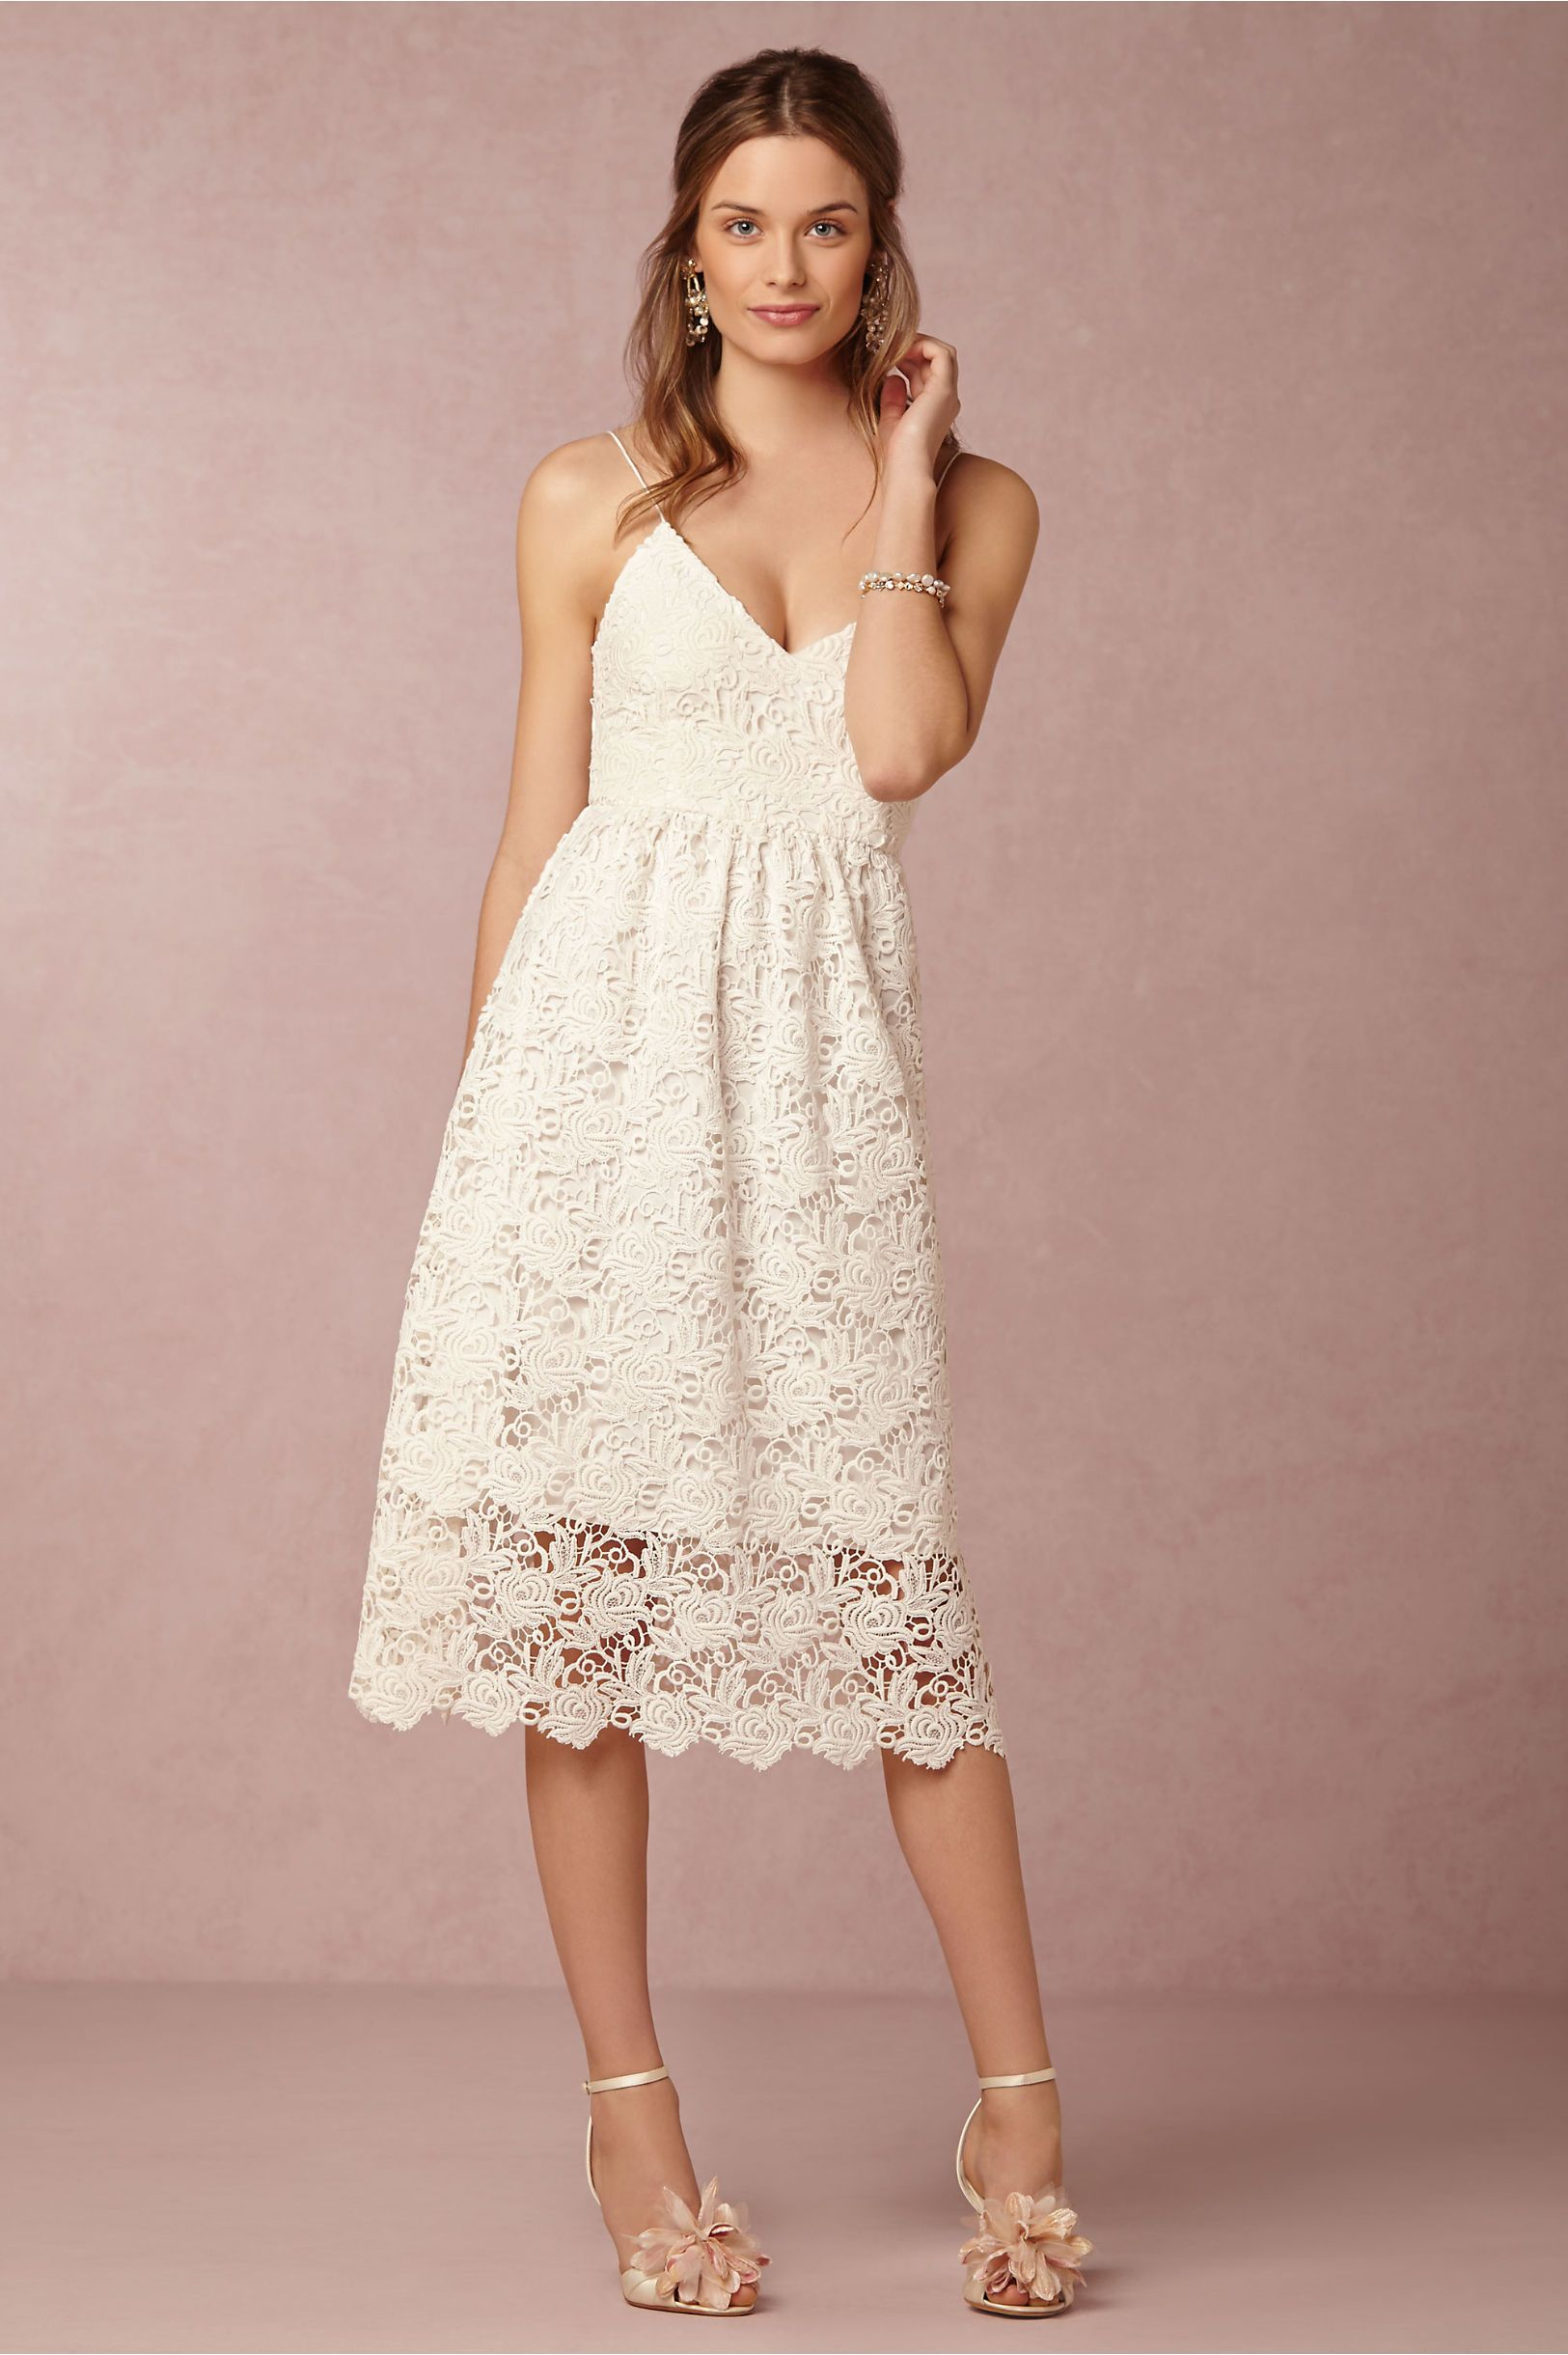 Fabulous Bridal Shower Dresses To Wear If You Re The Bride Dress For Wedding From Bhldn